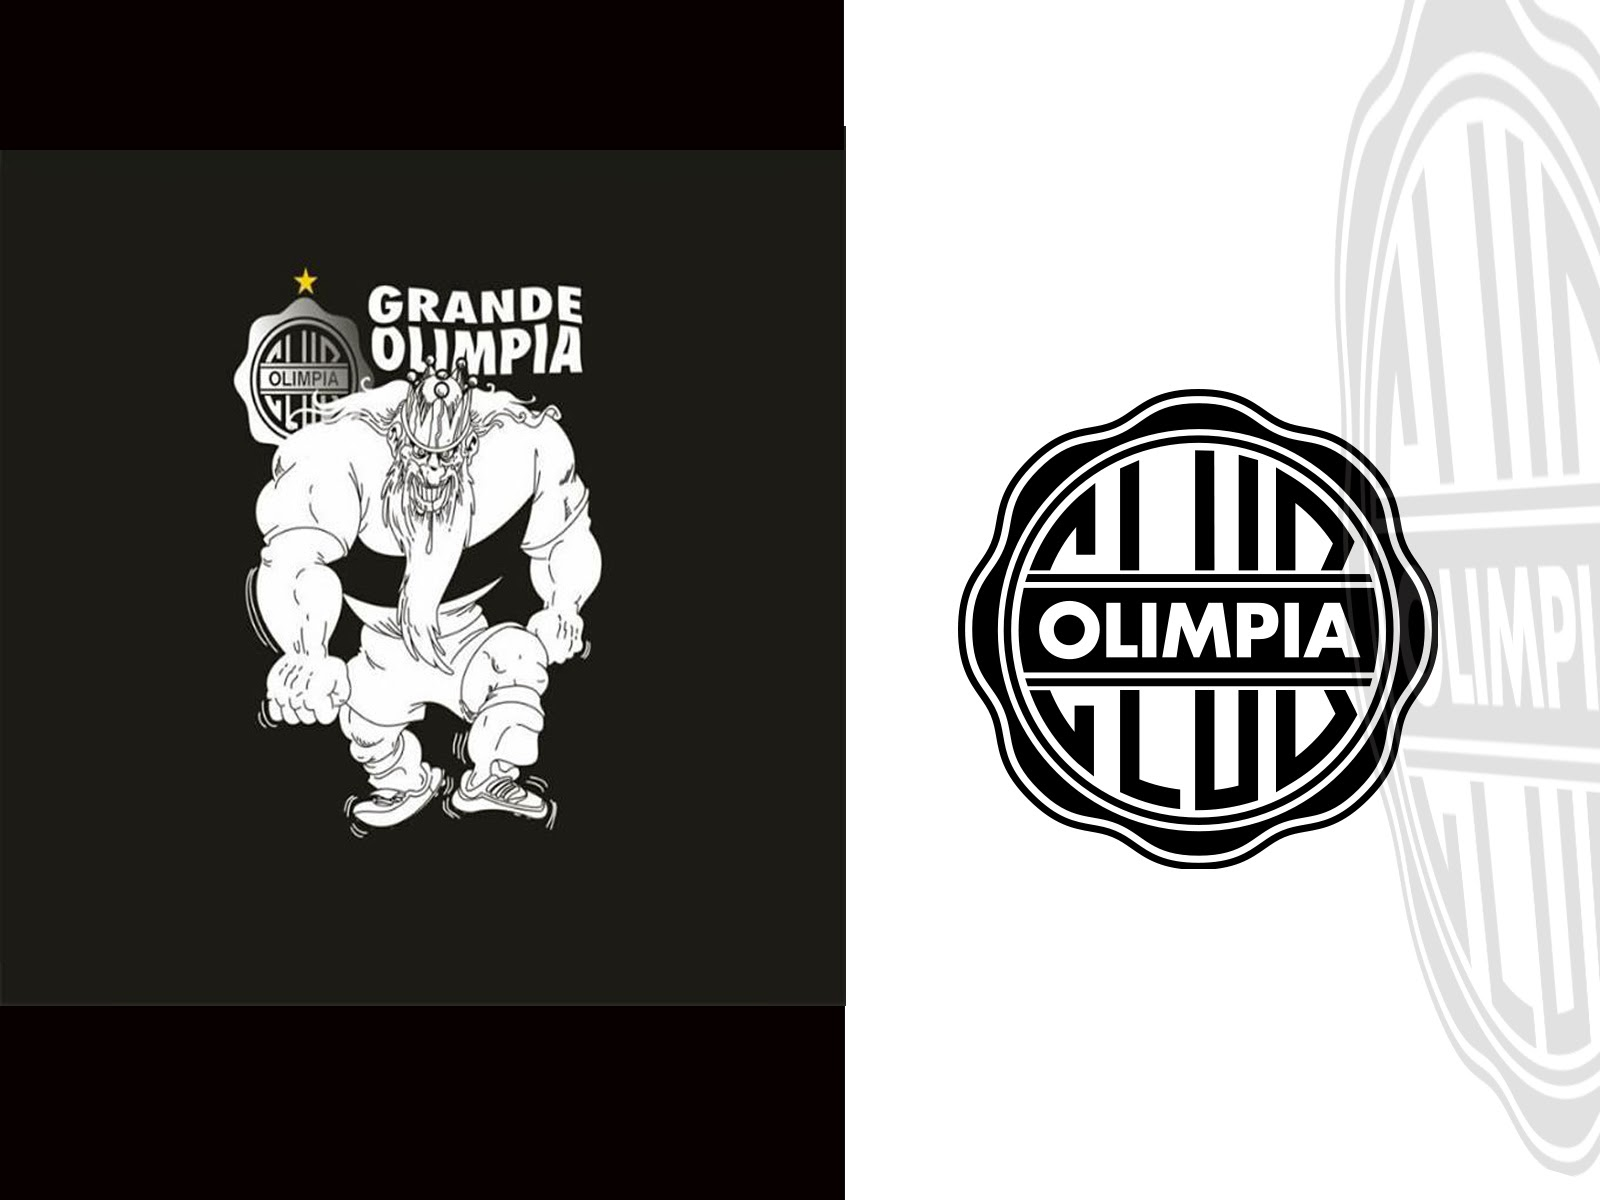 Blogolimpia Bo Mi Club Olimpia Wallpapers Wp Olimpia0003 0005